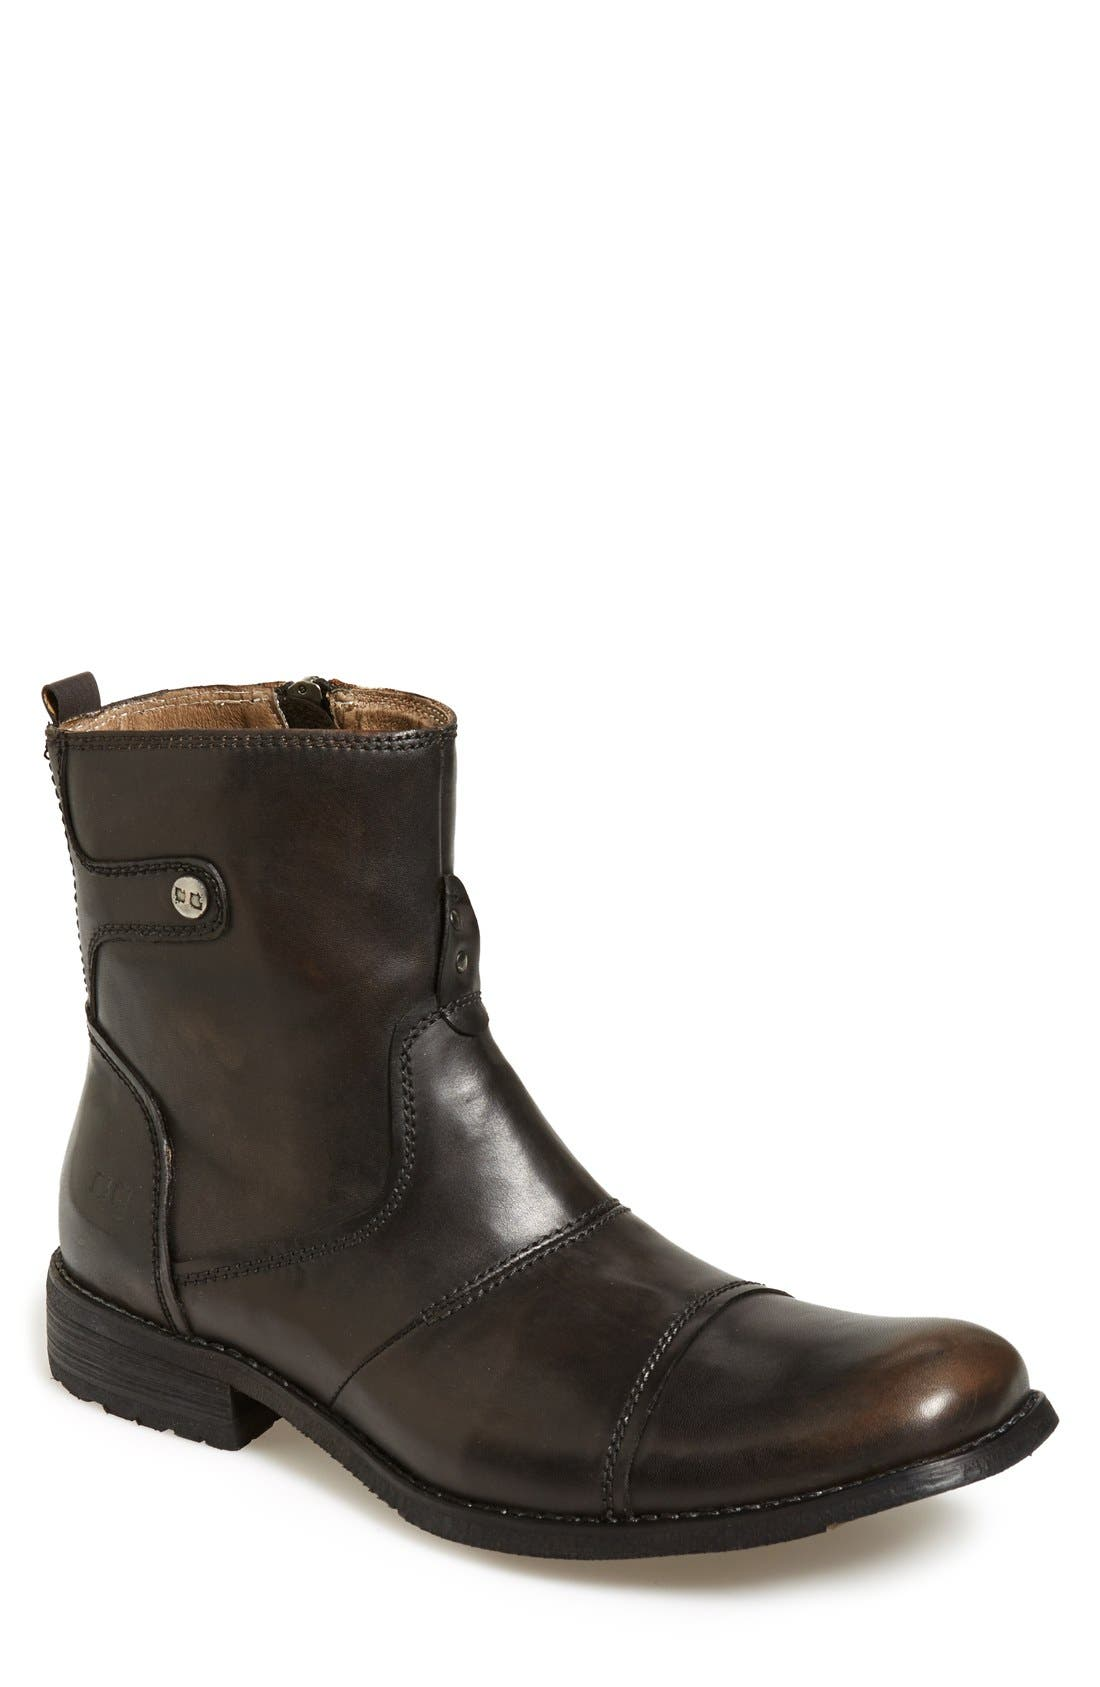 Main Image - Bed Stu 'Burst' Boot (Online Only) (Men)